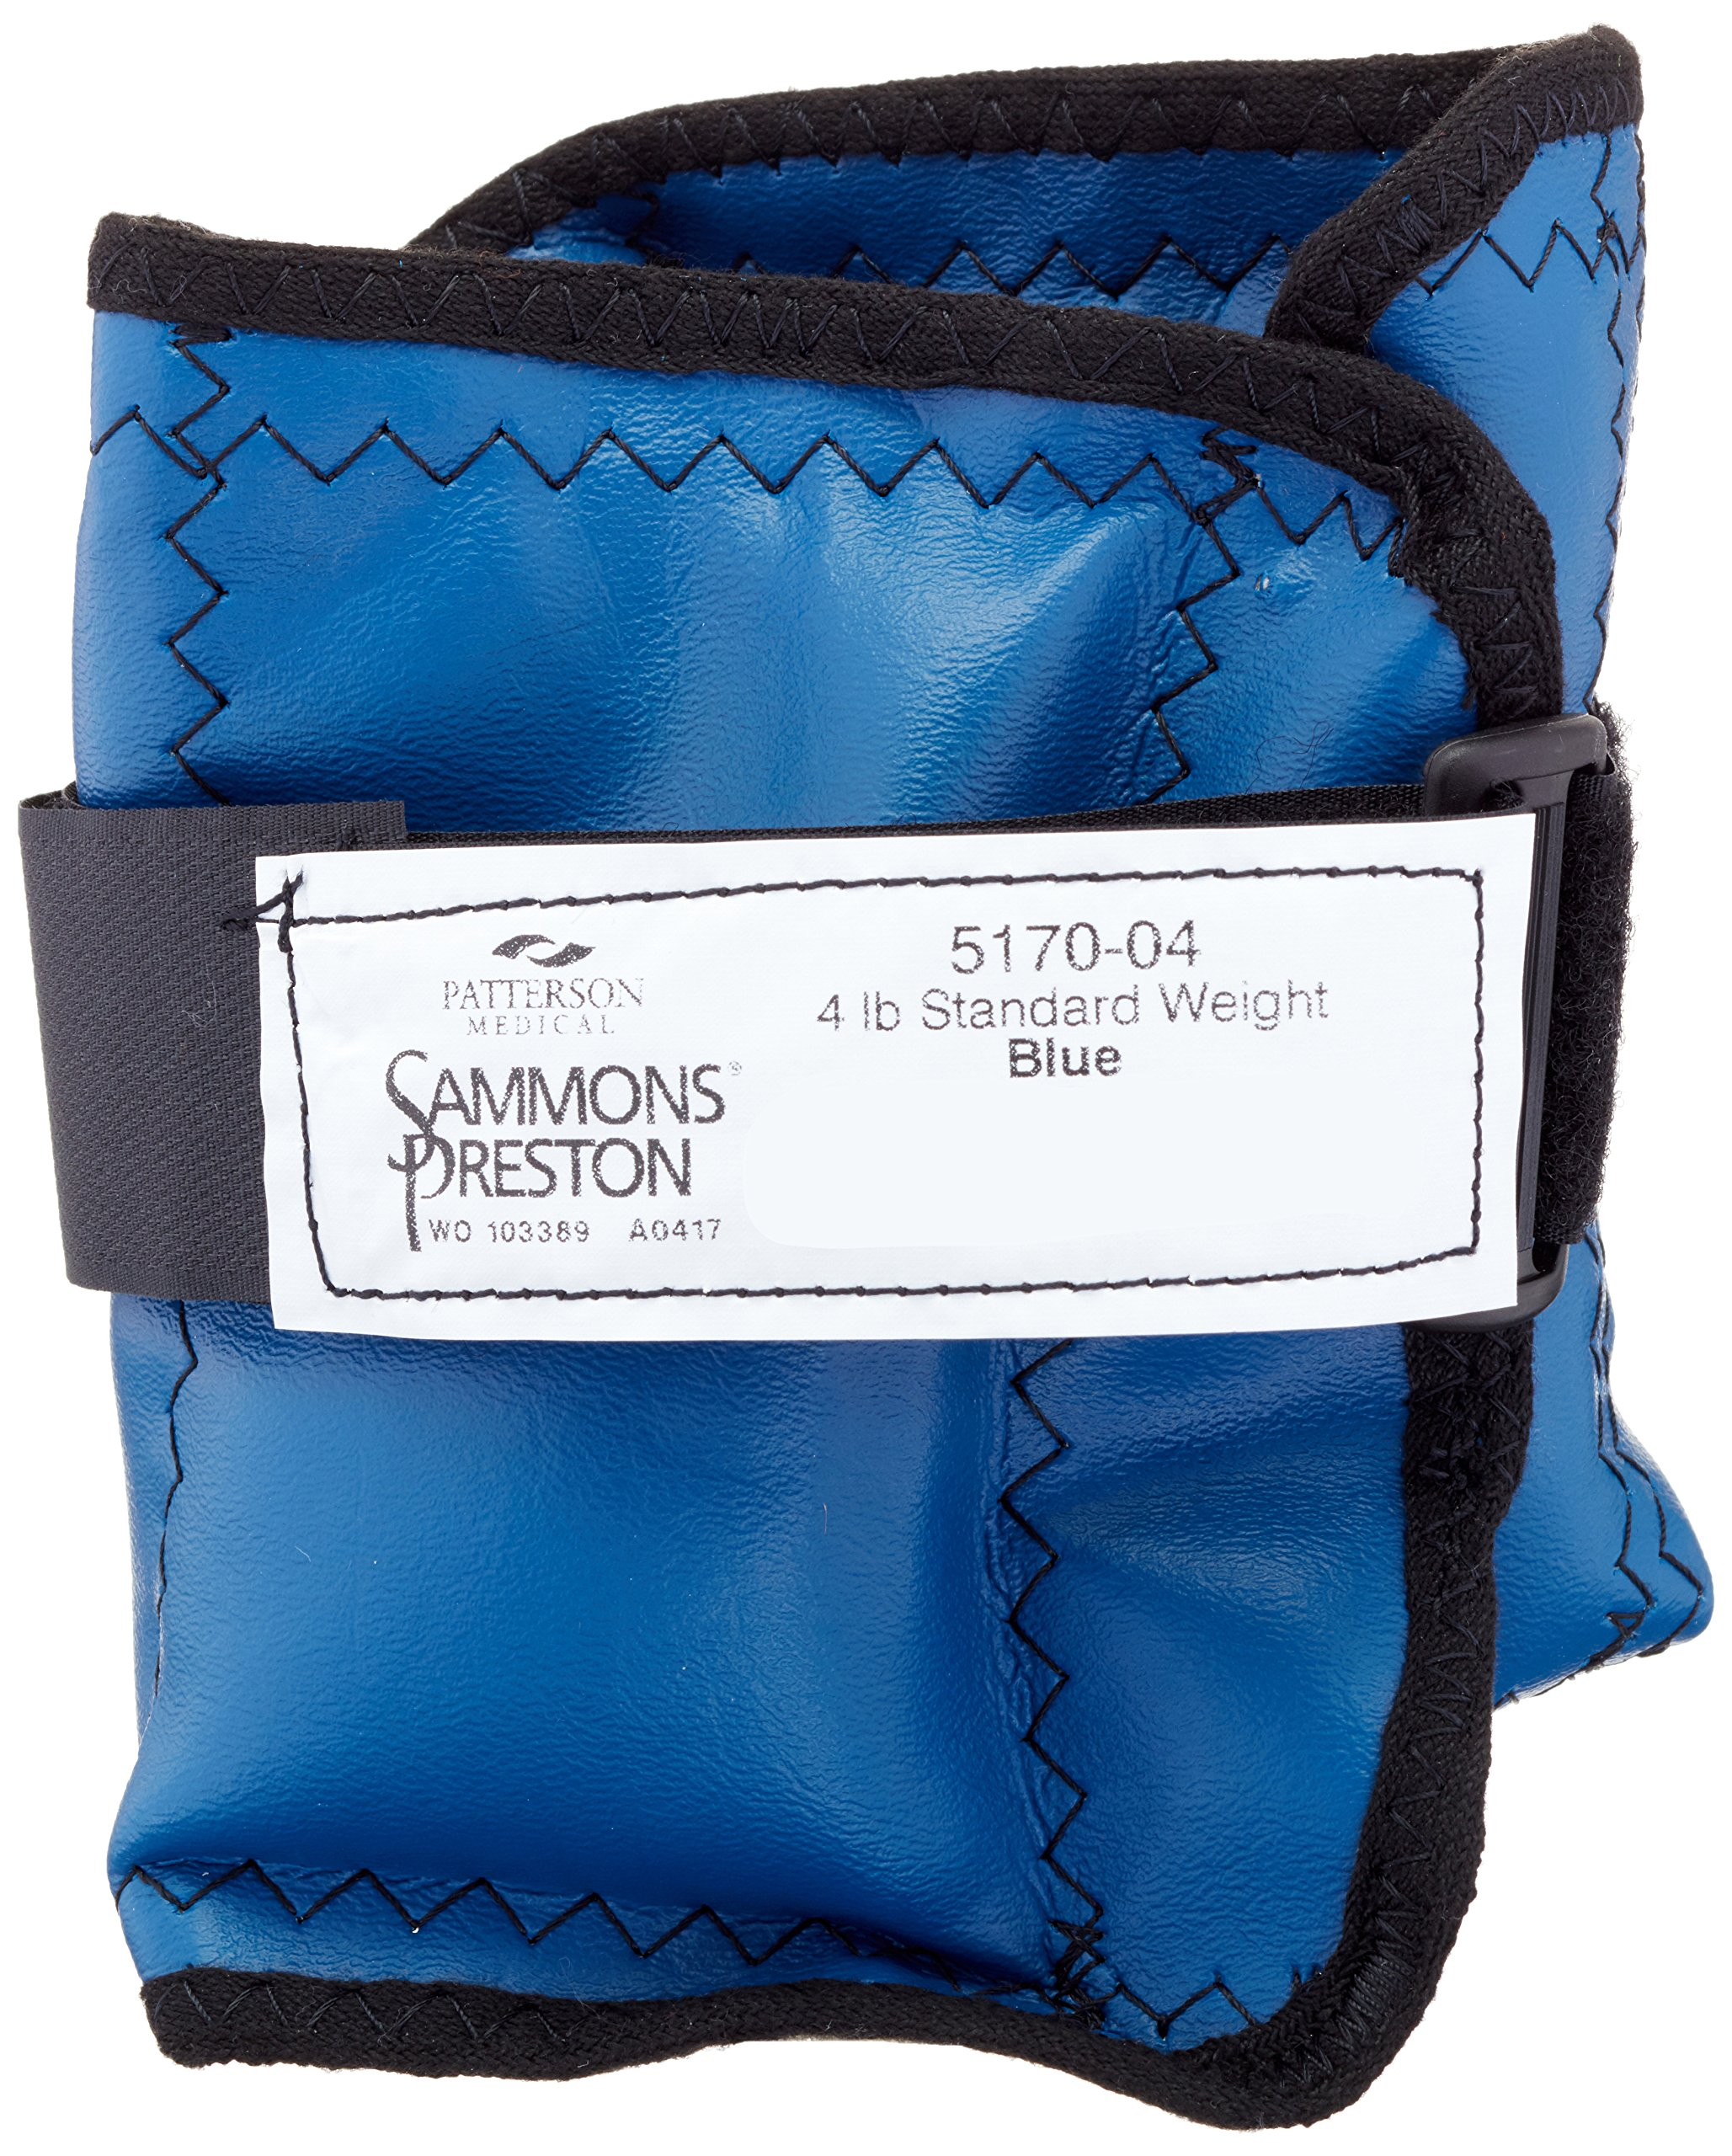 Sammons Preston Cuff Weight, 4 lb, Blue, Velcro Strap & D-Ring Closure, Grommet for Easy Hanging, Steel Ankle & Wrist Weights are Lead Free, Exercise Tool for Strength Building & Injury Rehab by Sammons Preston (Image #1)